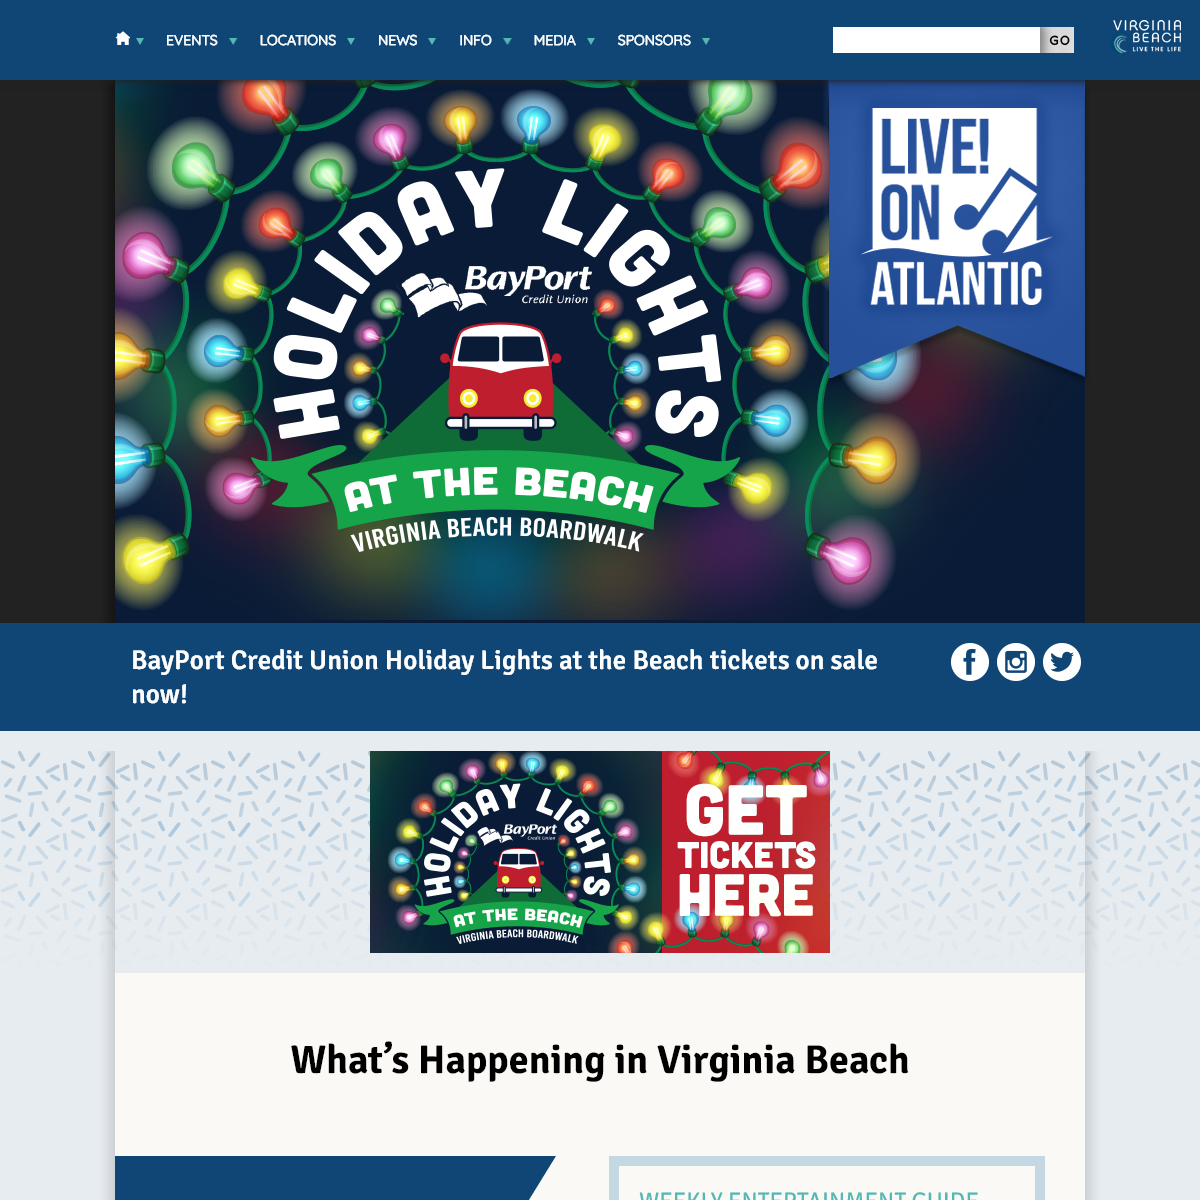 Live! on Atlantic - It`s all happening Live! on Atlantic. Great entertainment at the Virginia Beach Oceanfront.